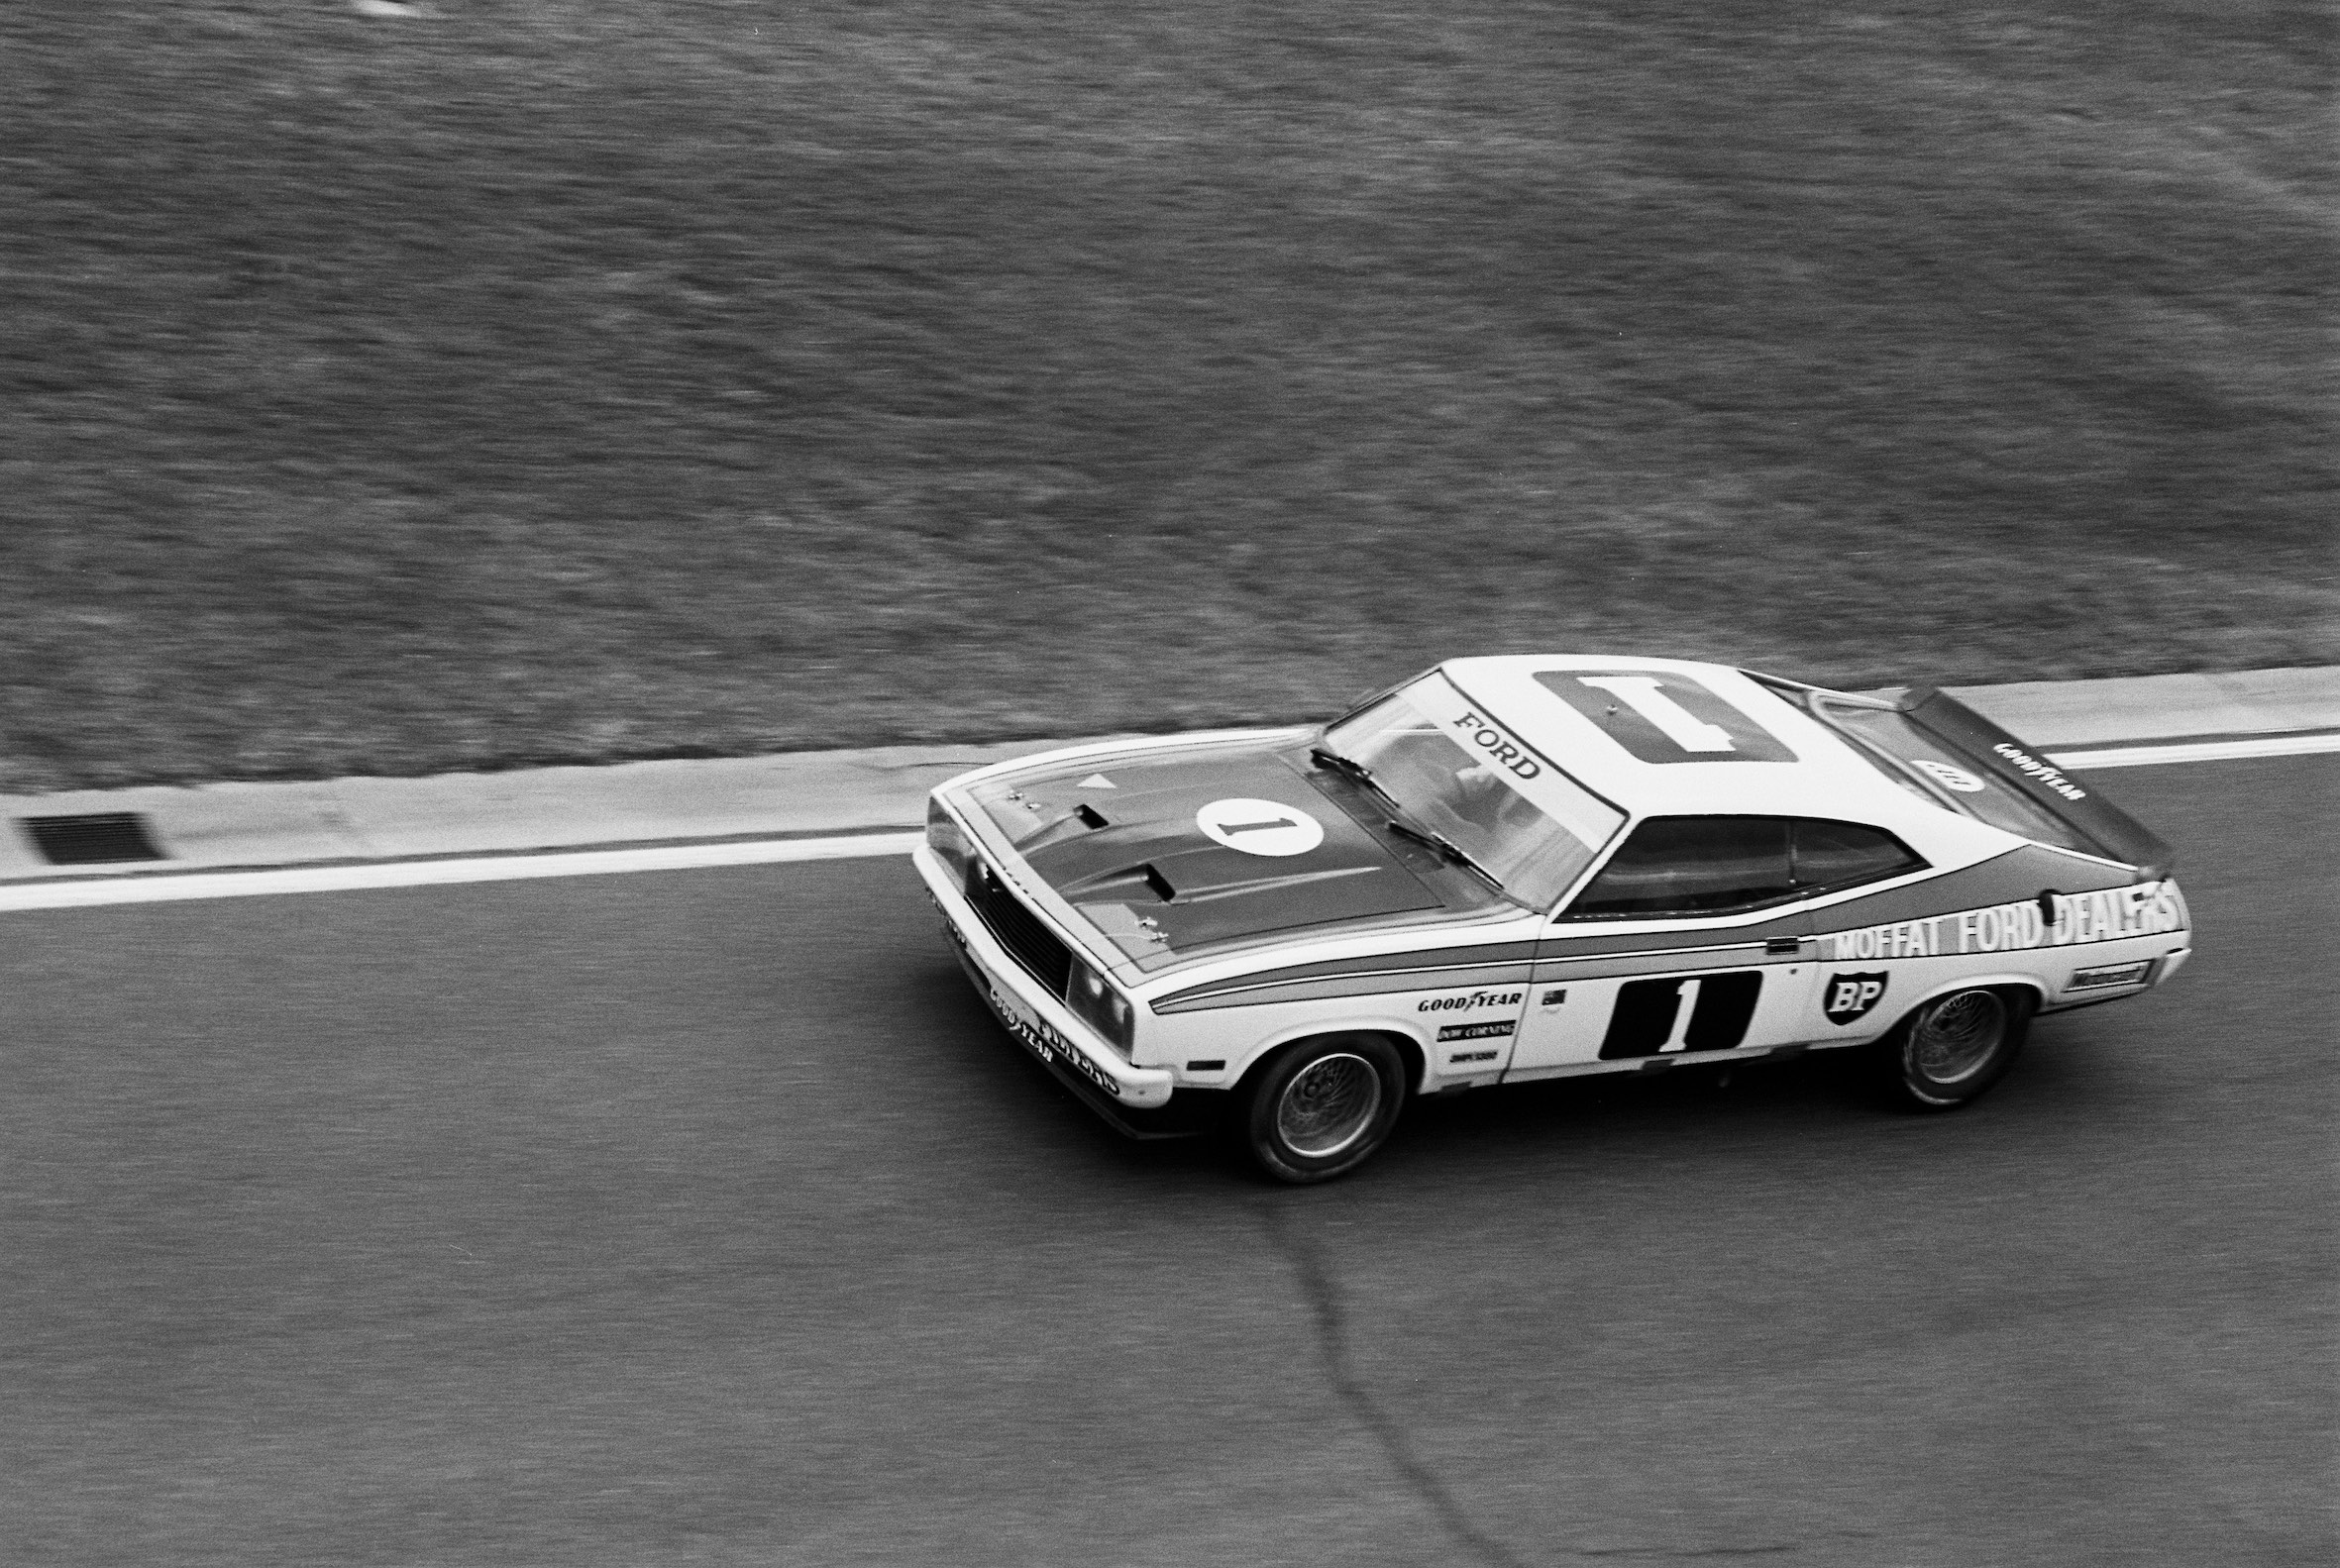 hight resolution of master blaster 1977 ford falcon xc hardtop gs500 group c